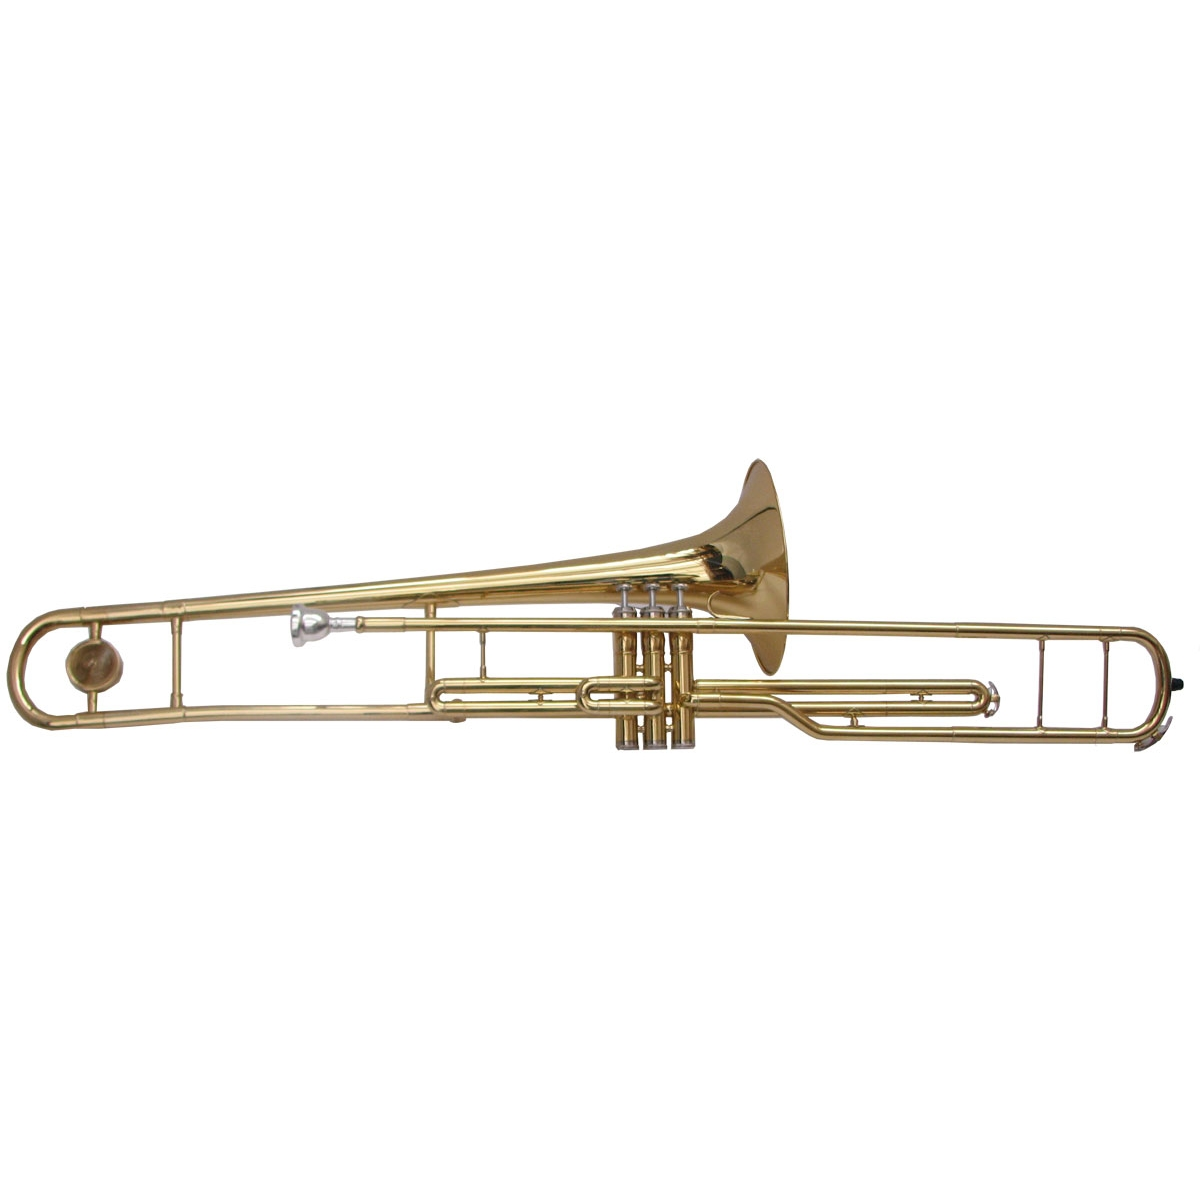 TROMBONE A PISTONI STB-10G  in Sib GOLD SOUNDSATION